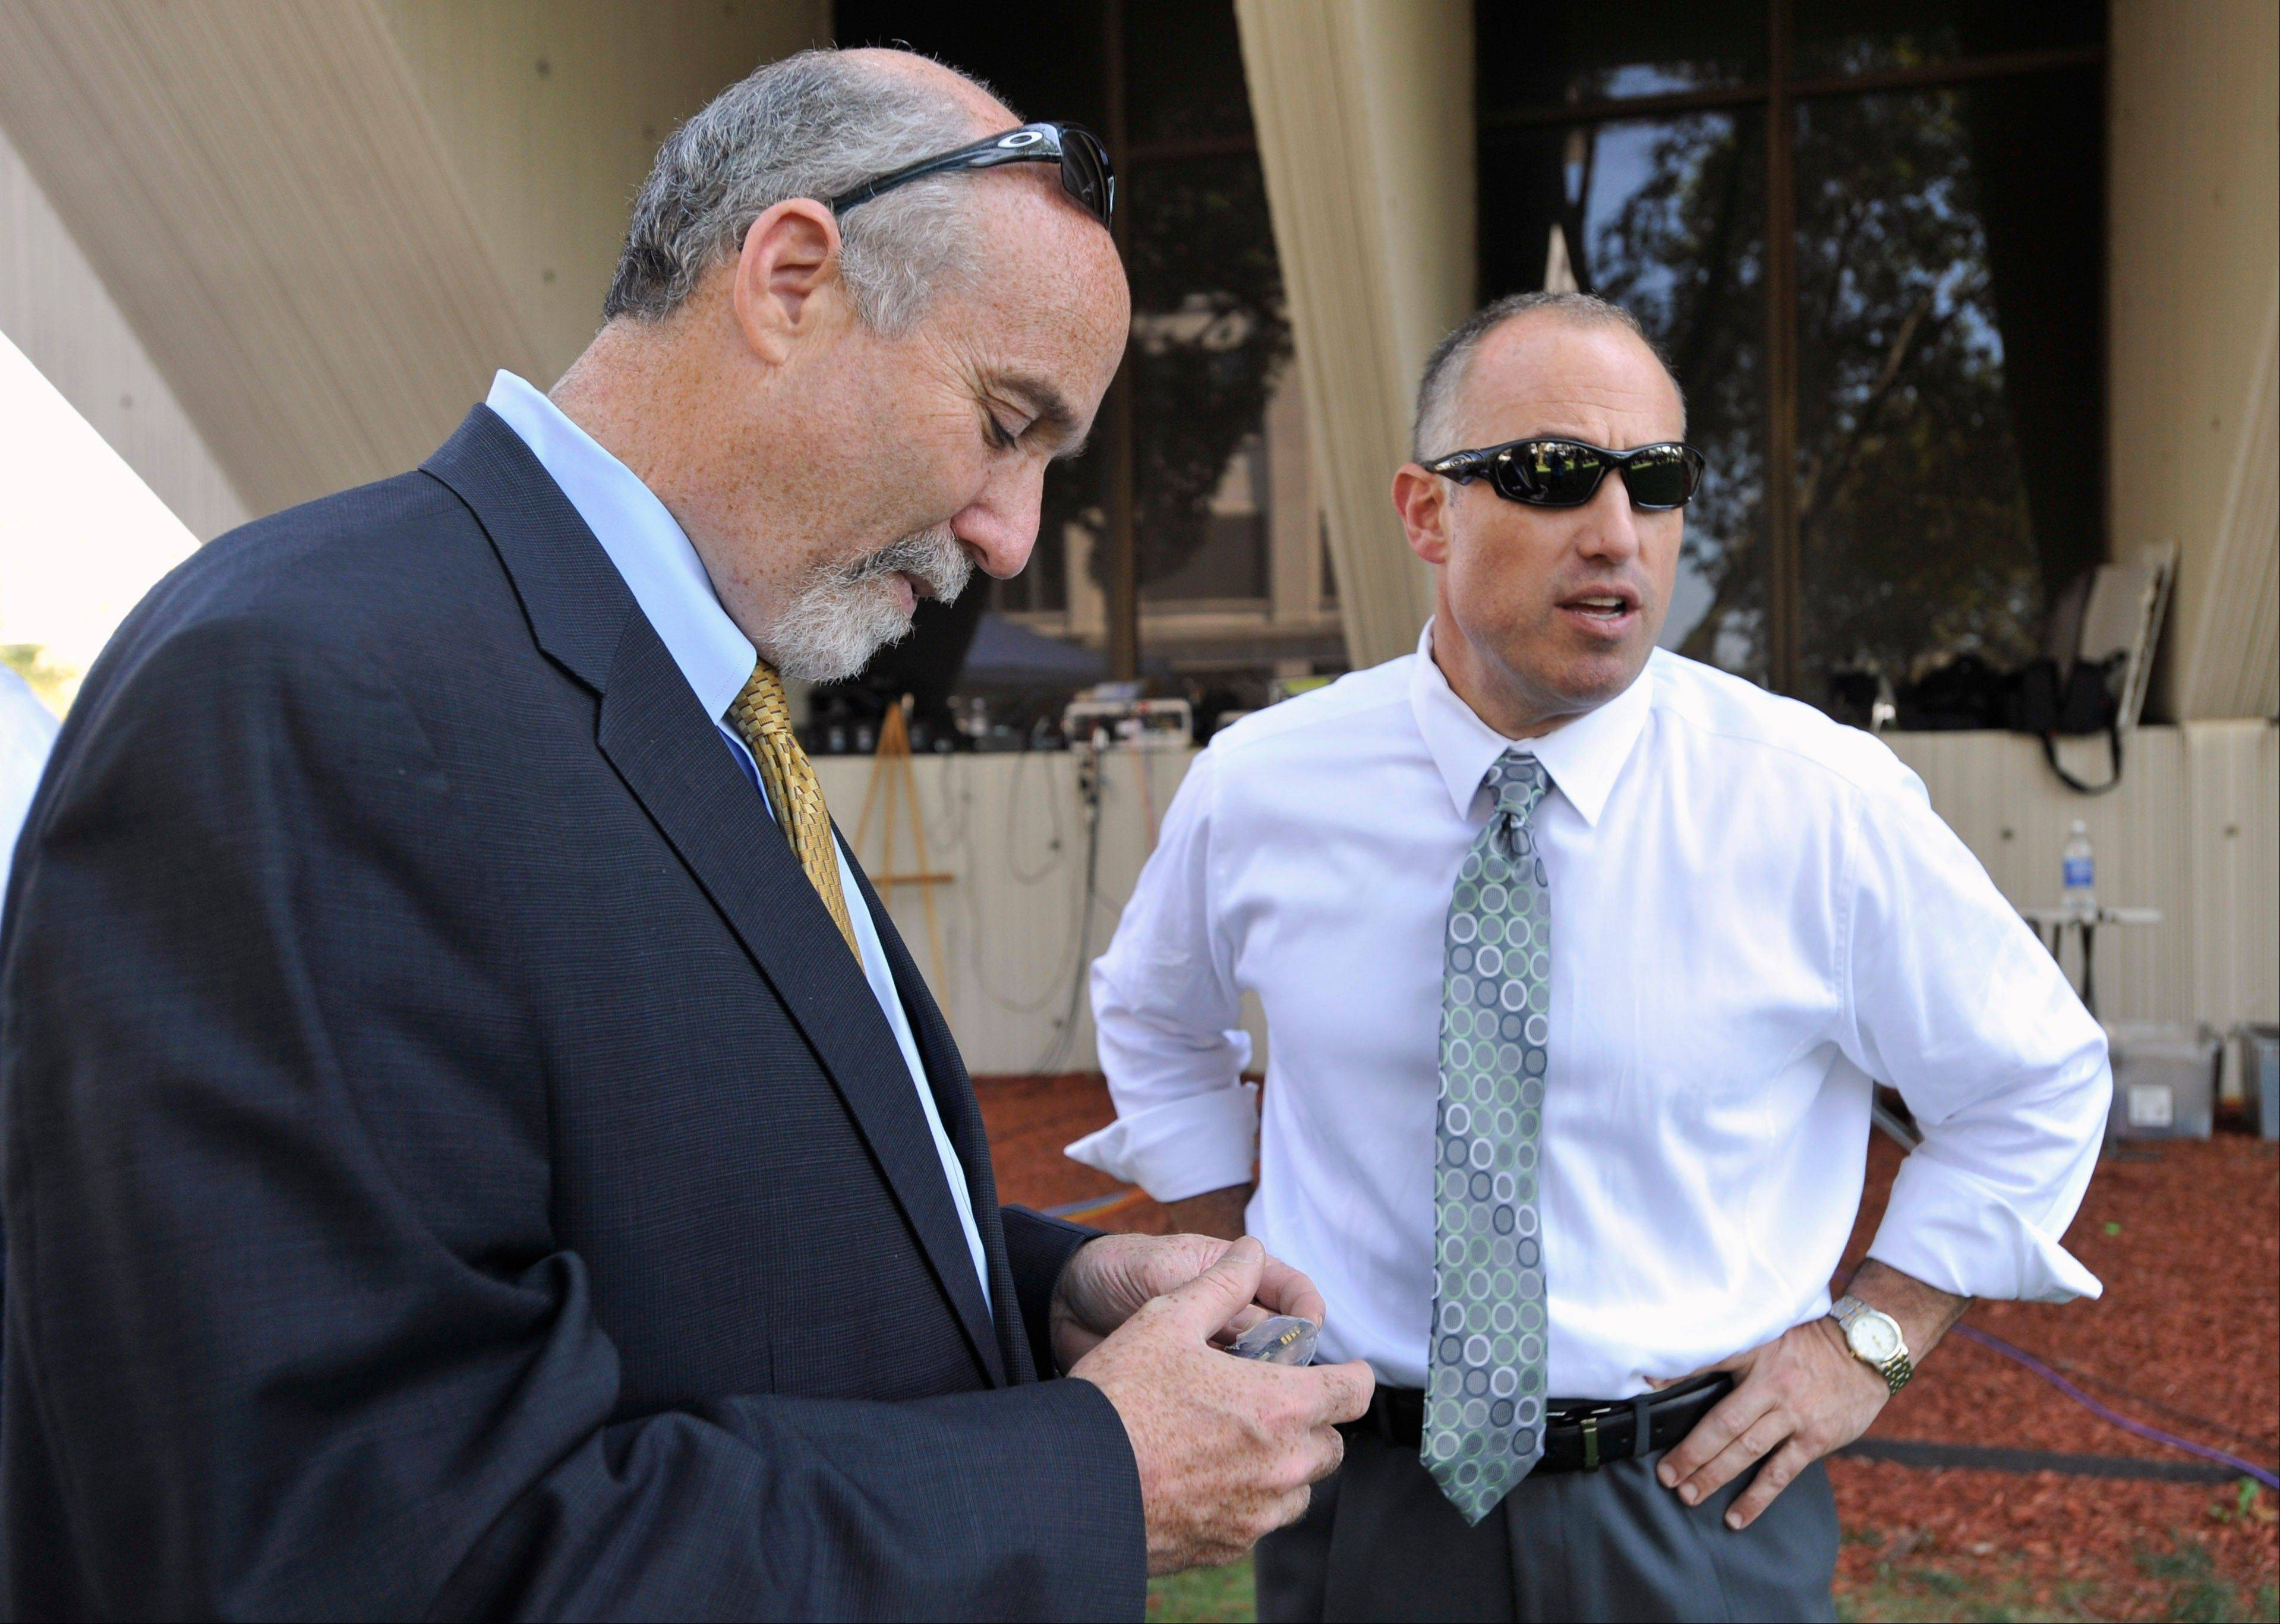 Joel Brodsky, left, and Steven Greenberg, attorneys for former Bolingbrook police sergeant Drew Peterson, confer outside the Will County courthouse in Joliet during the jury deliberations in Peterson's murder trial last September.